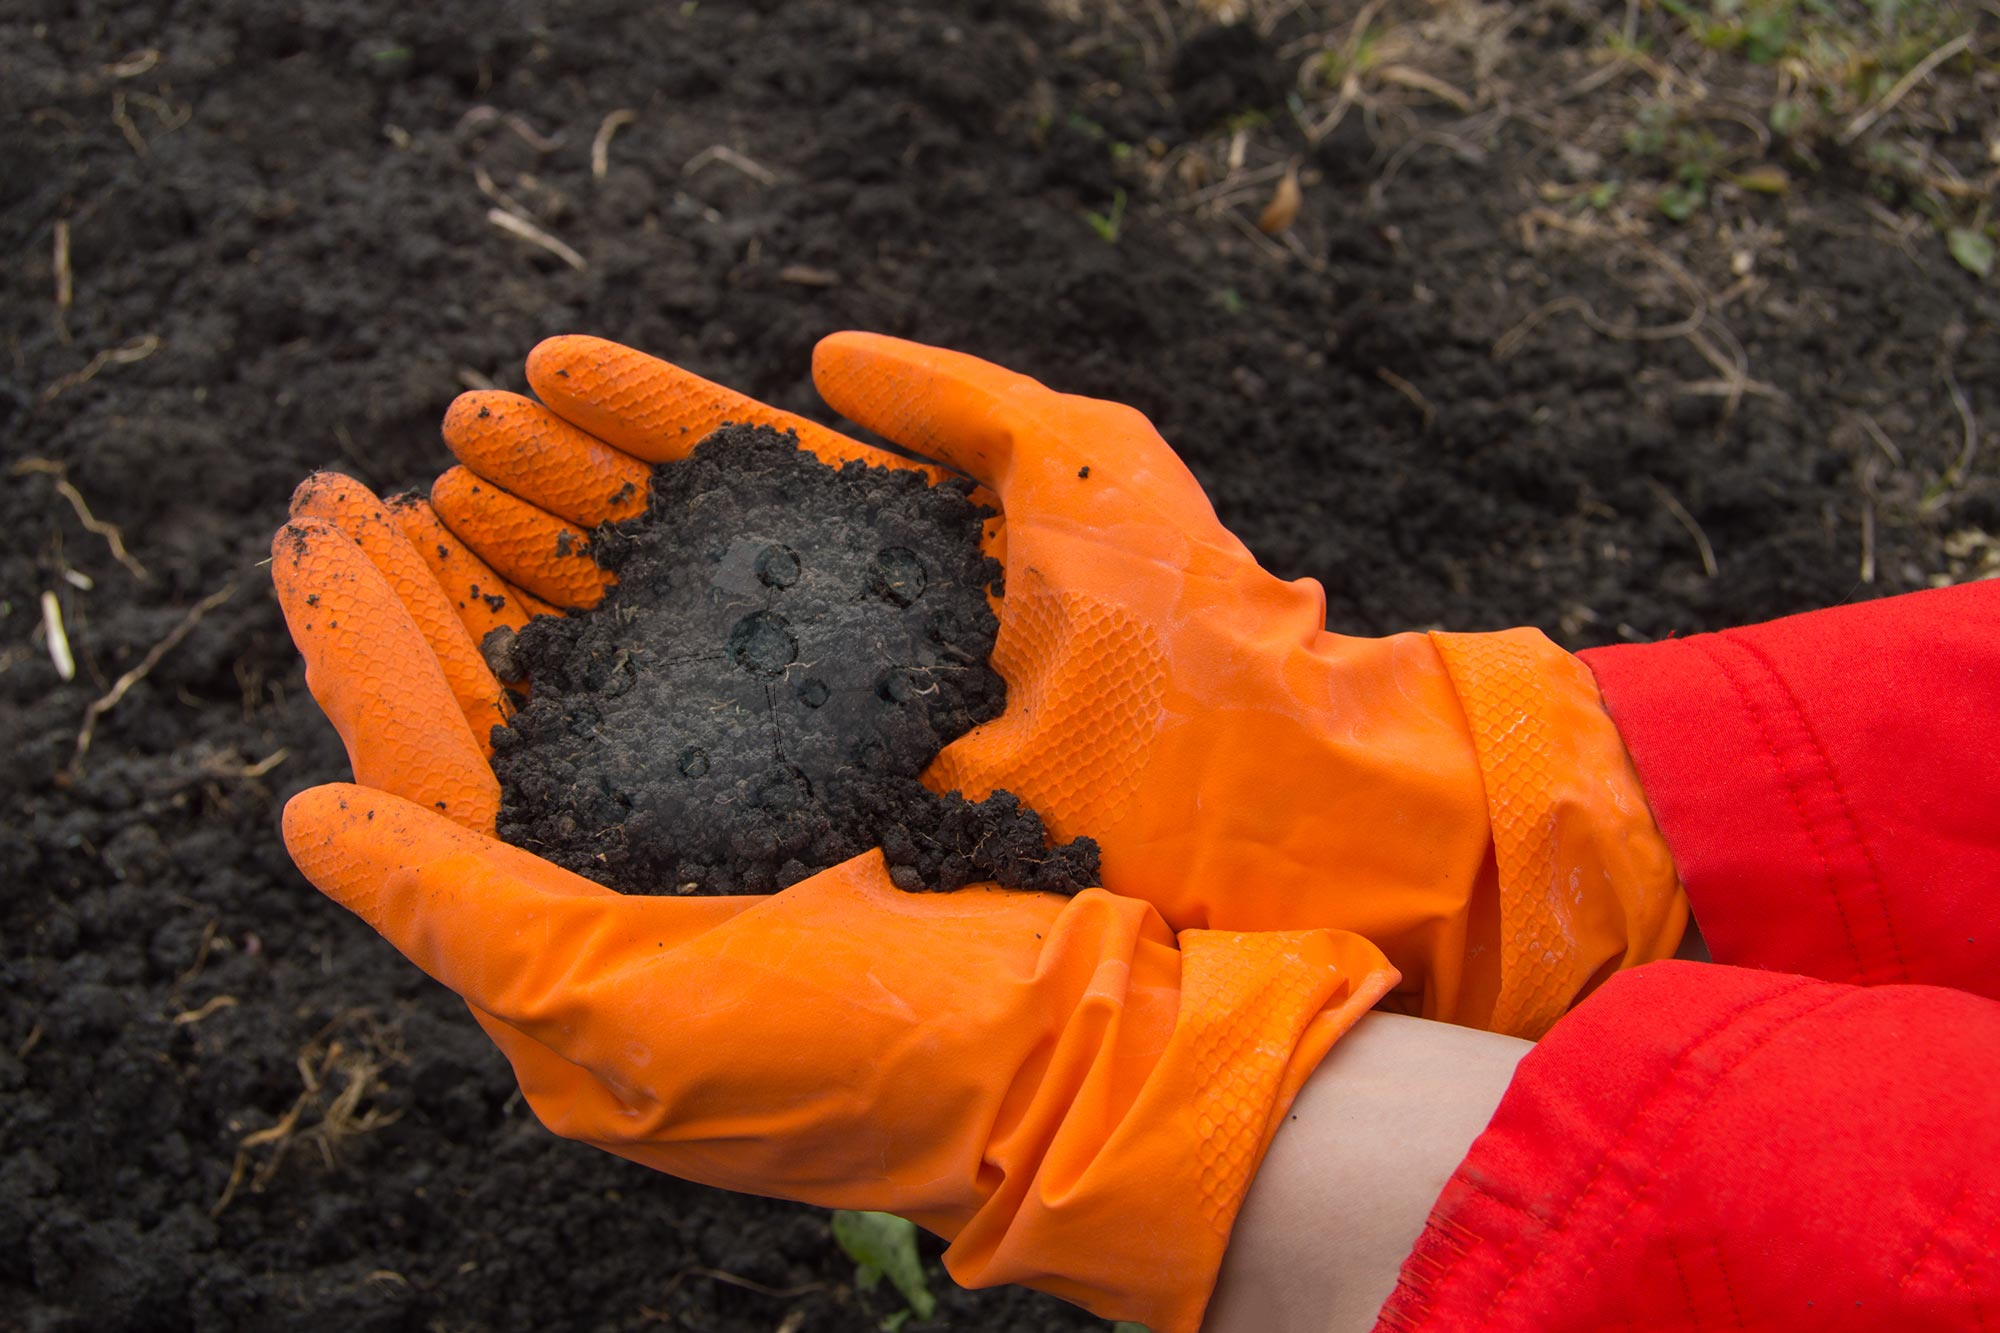 Researchers Unearth a 'Ticking Time Bomb' – Synthetic Chemicals in Soils - SciTechDaily